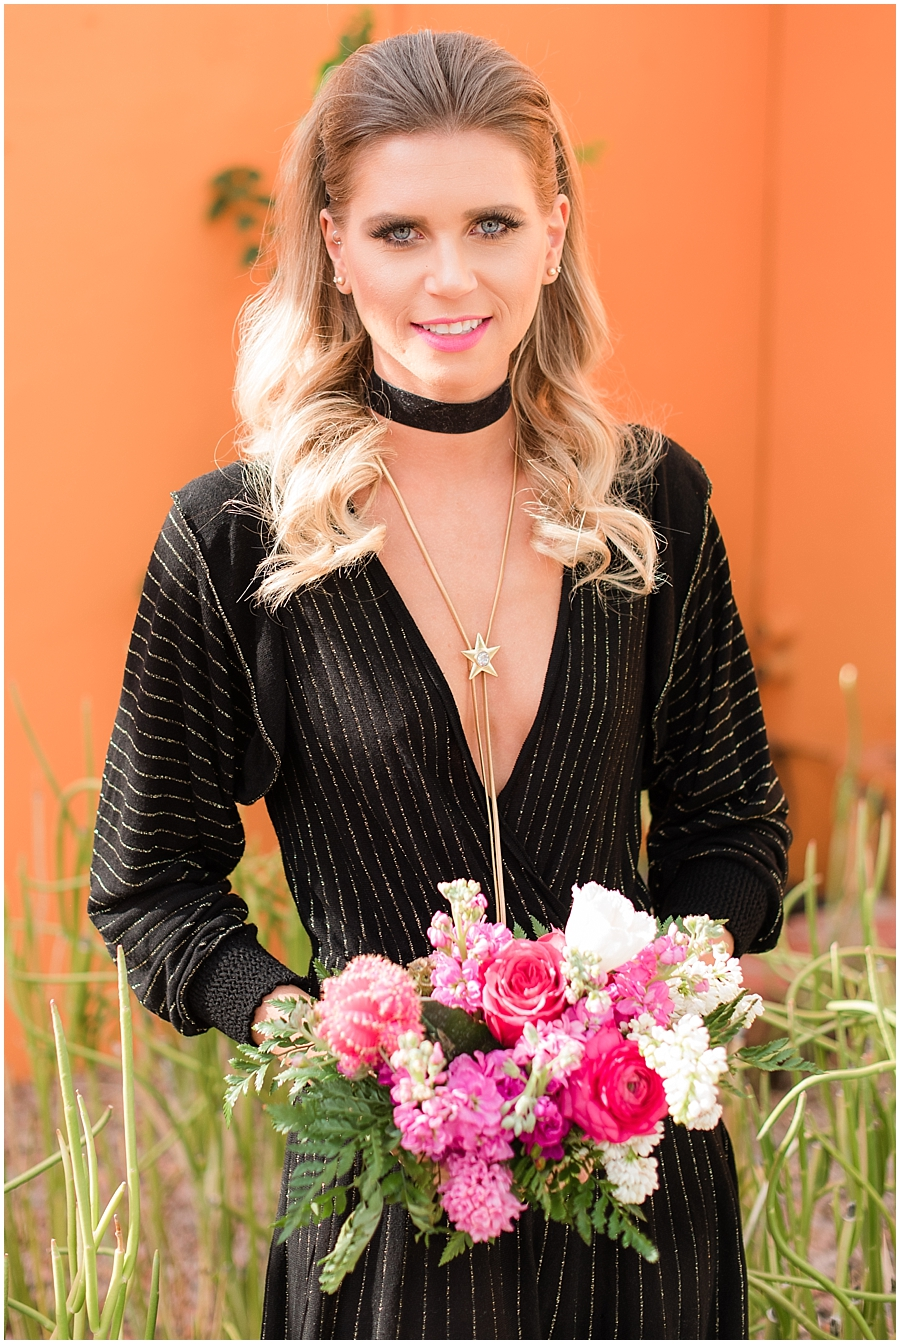 Gorgeous bridesmaid Emily Gehrke wearing fashion by Zara, hair and makeup done by Makiaj Beauty, and jewelry by @francesvintage. Photos taking by Jade Min Photography at The Saguaro Scottsdale.